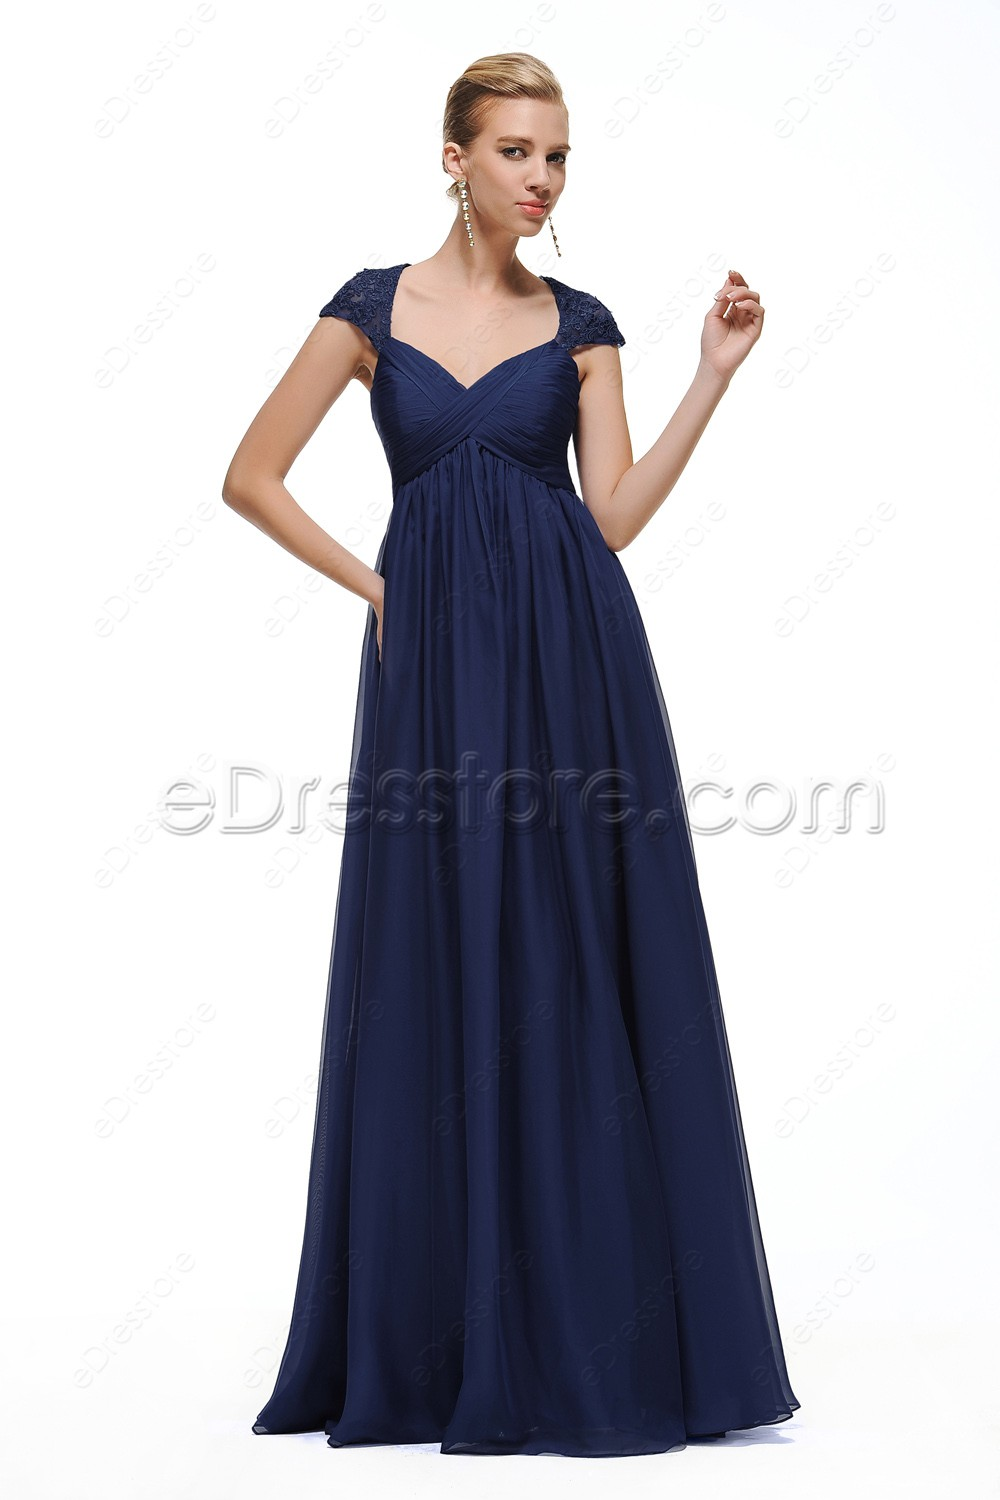 navy blue maternity formal dresses pregnant wedding guest With navy blue dresses for wedding guest